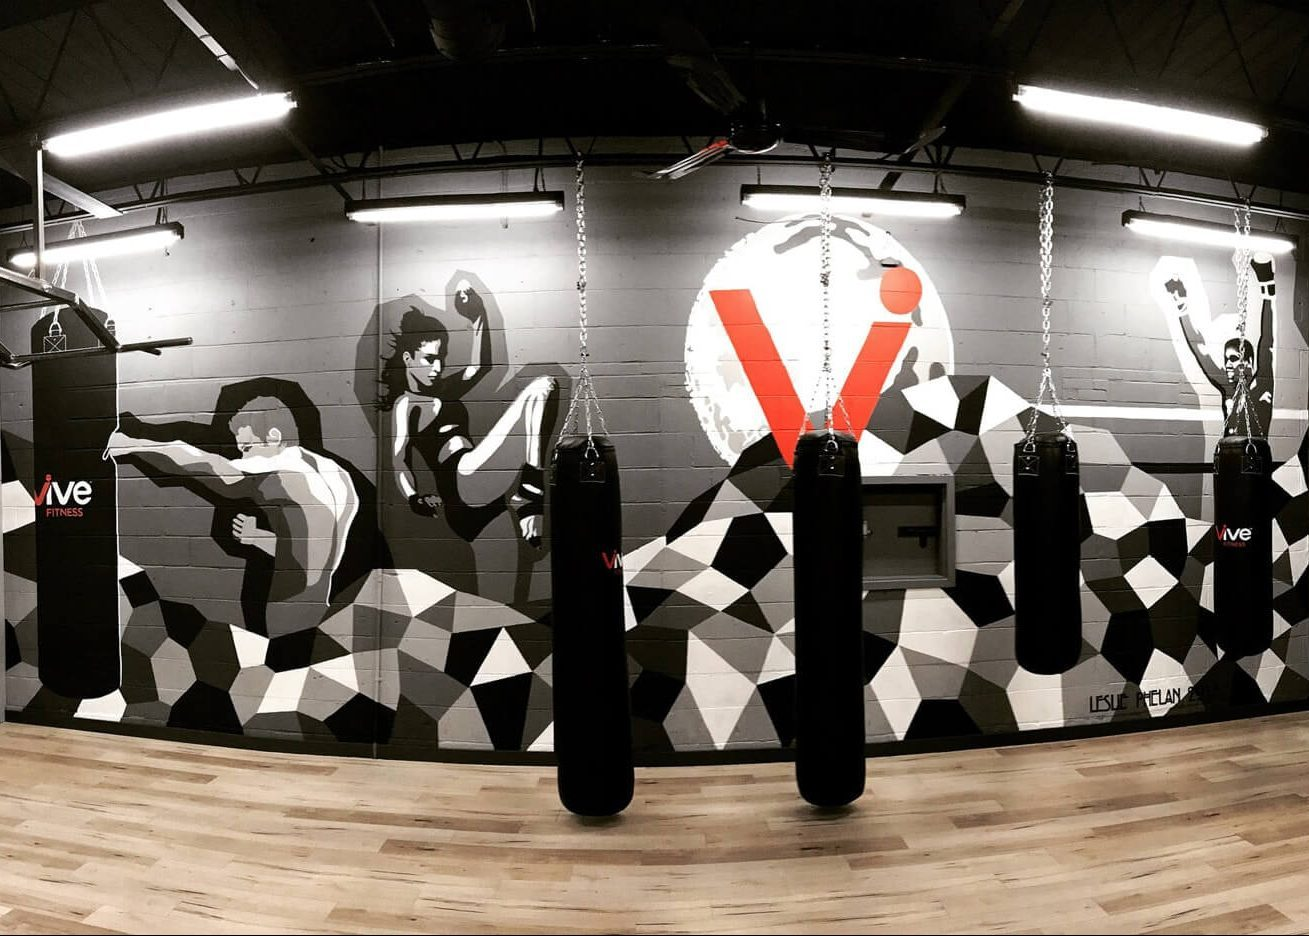 boxing gym art, sport mural, commercial art